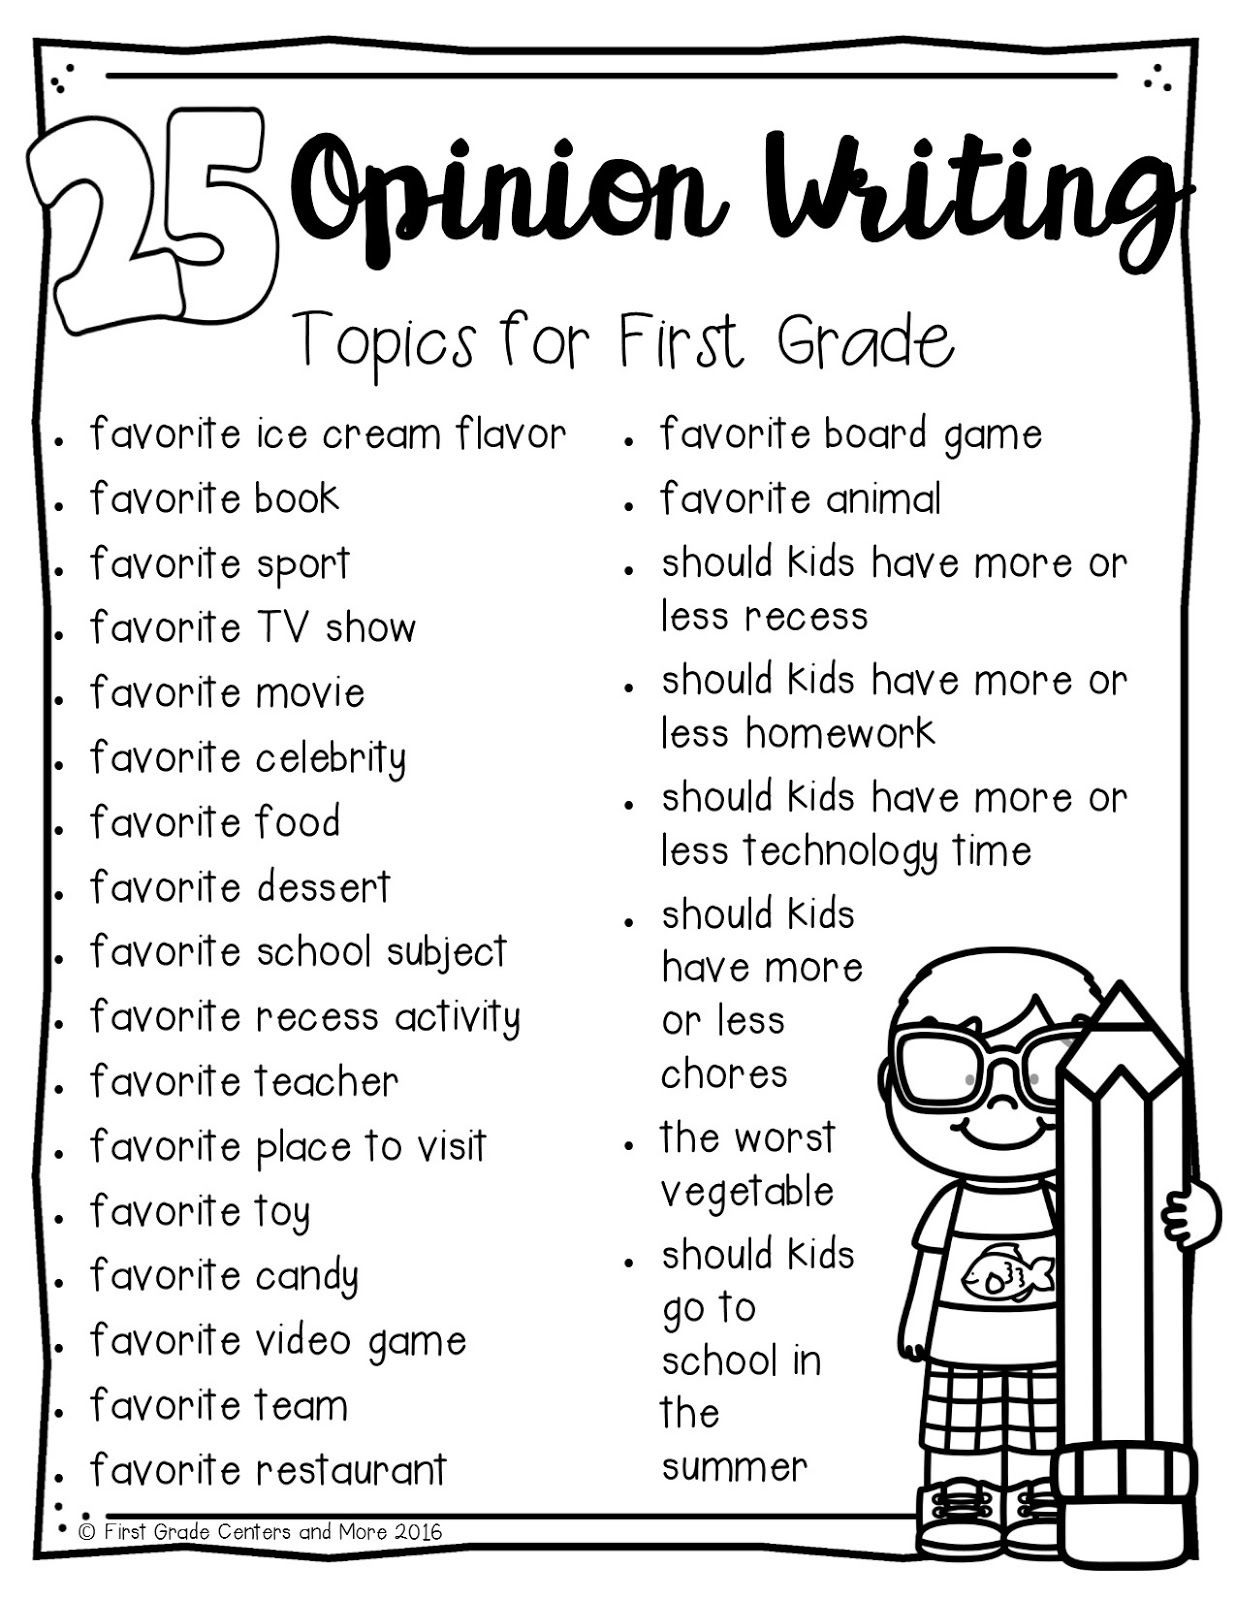 Teaching Opinion Writing Can Be A Lot Of Fun In First Grade Firsties Have Lots Of Opini Teaching Opinion Writing Writing Prompts 2nd Grade First Grade Writing Writing prompts for grade pdf